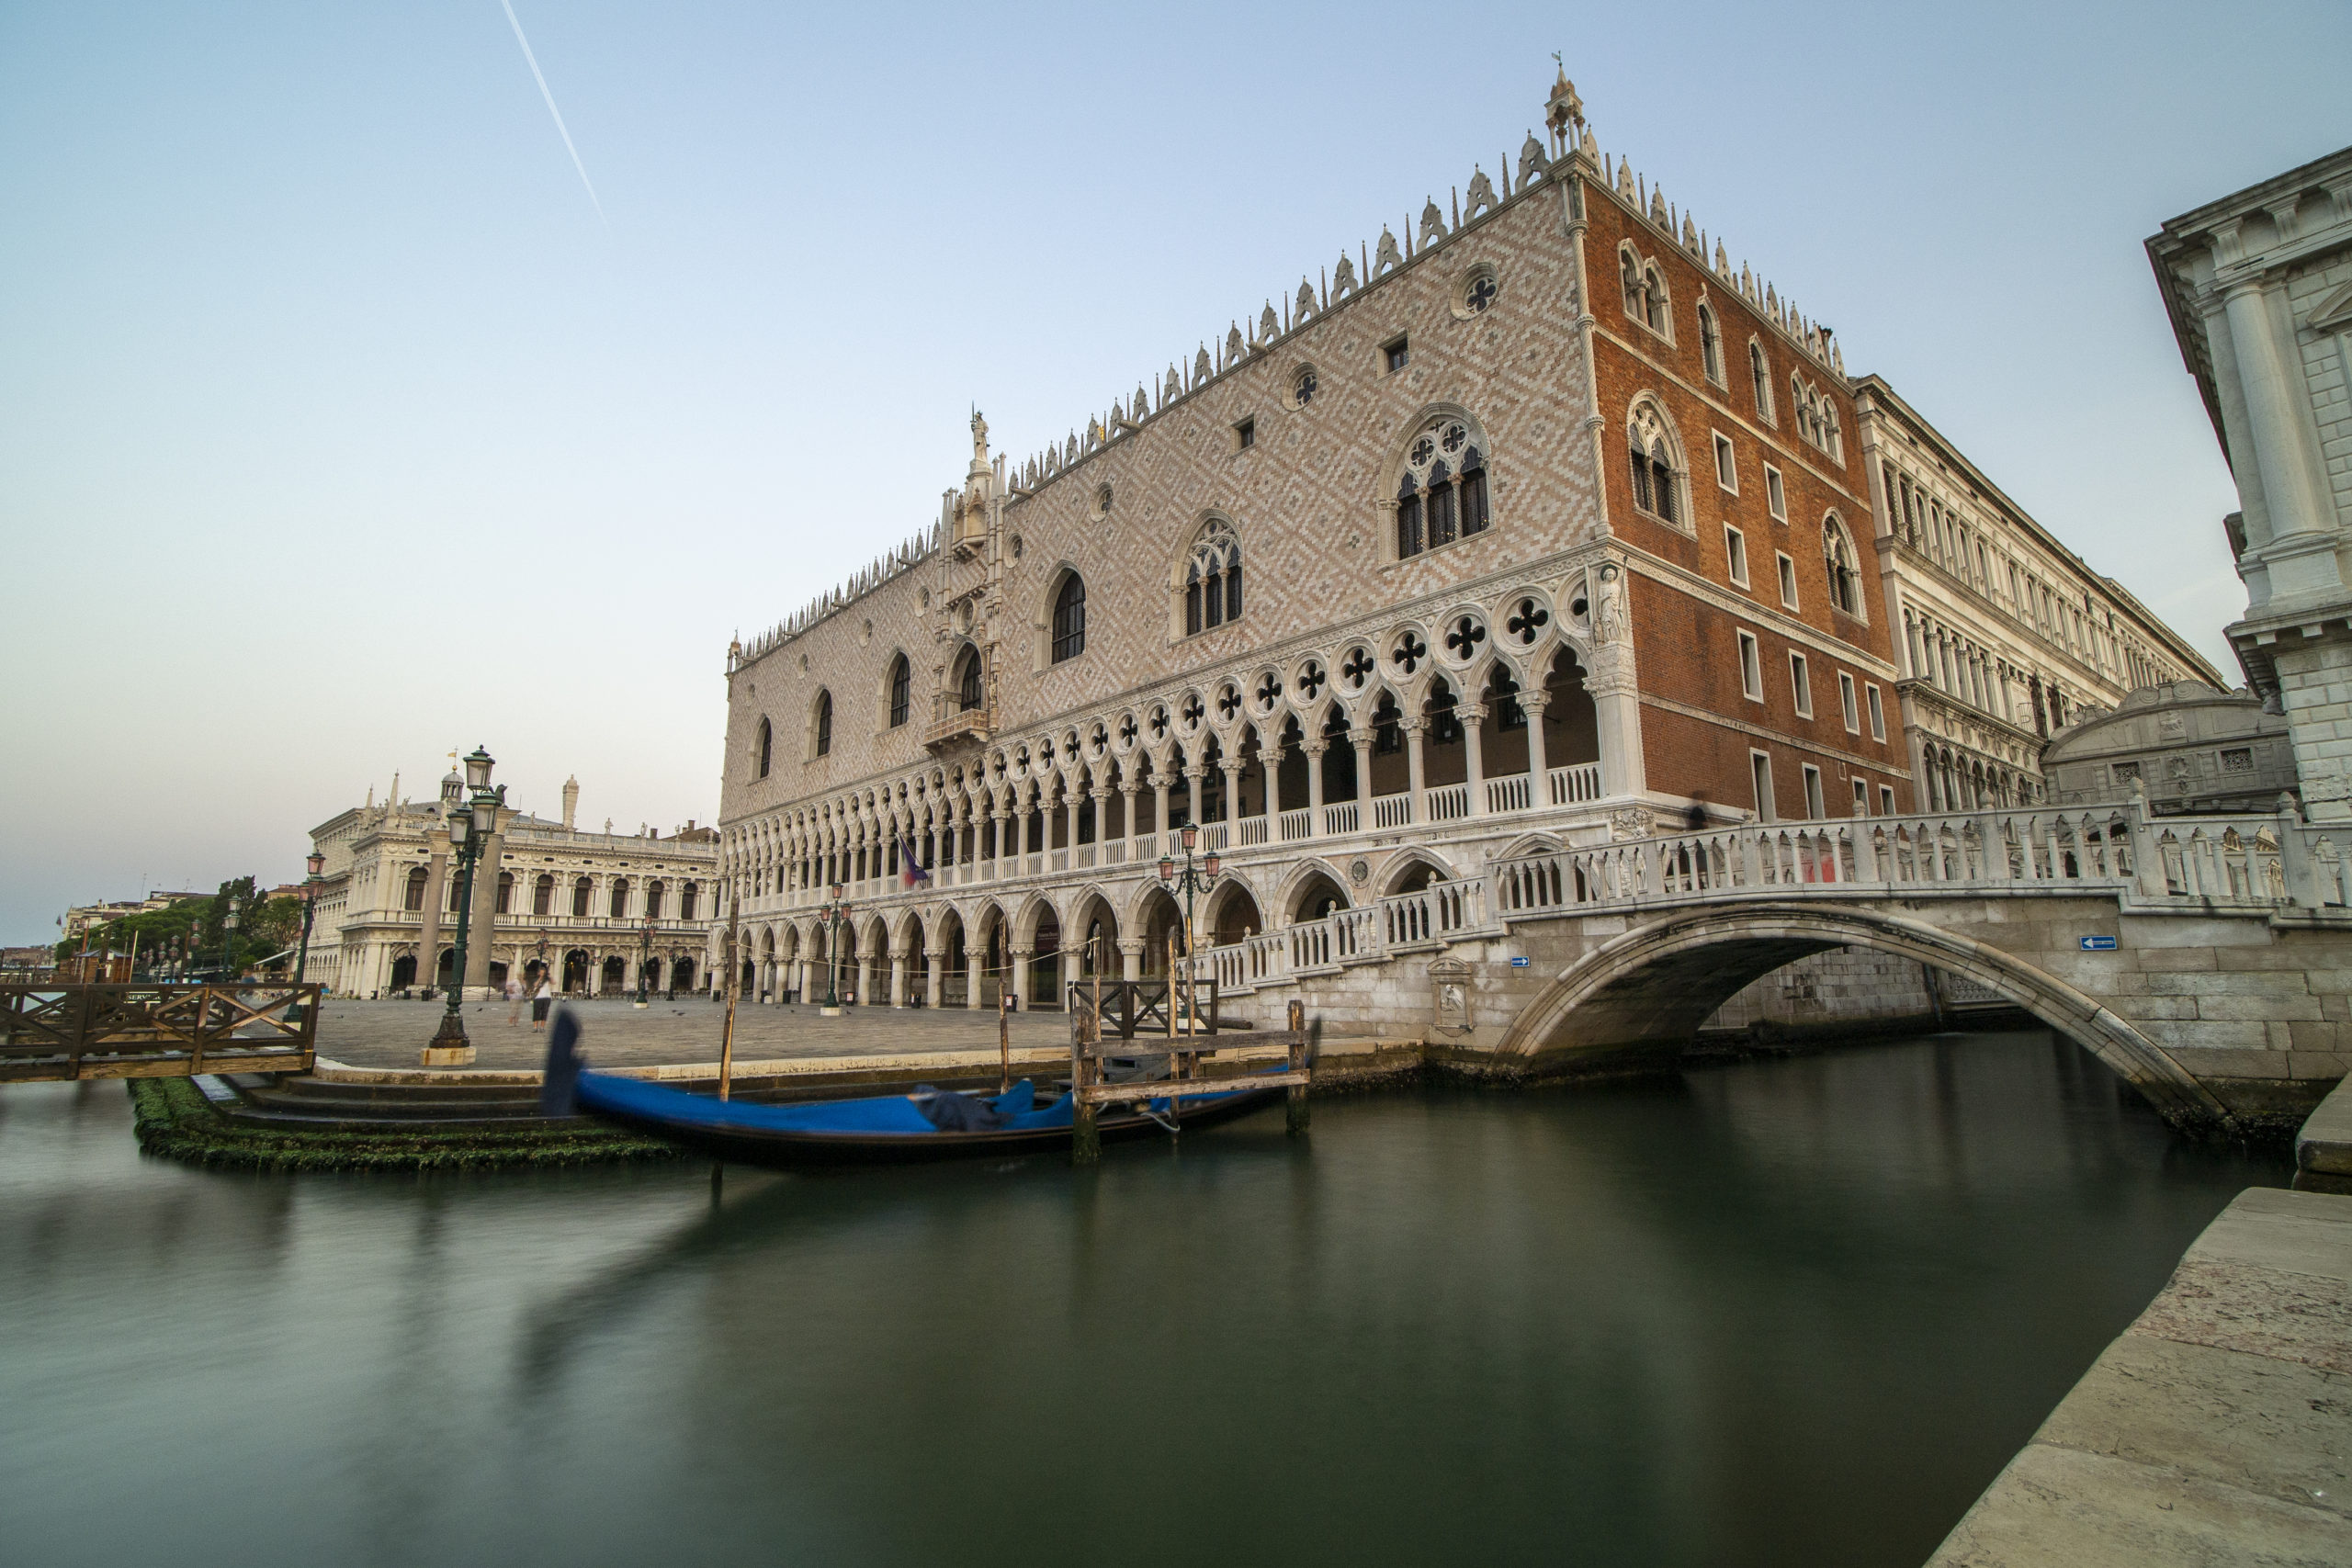 Beautiful view of the Ducal Palace and the bridge of sighs.